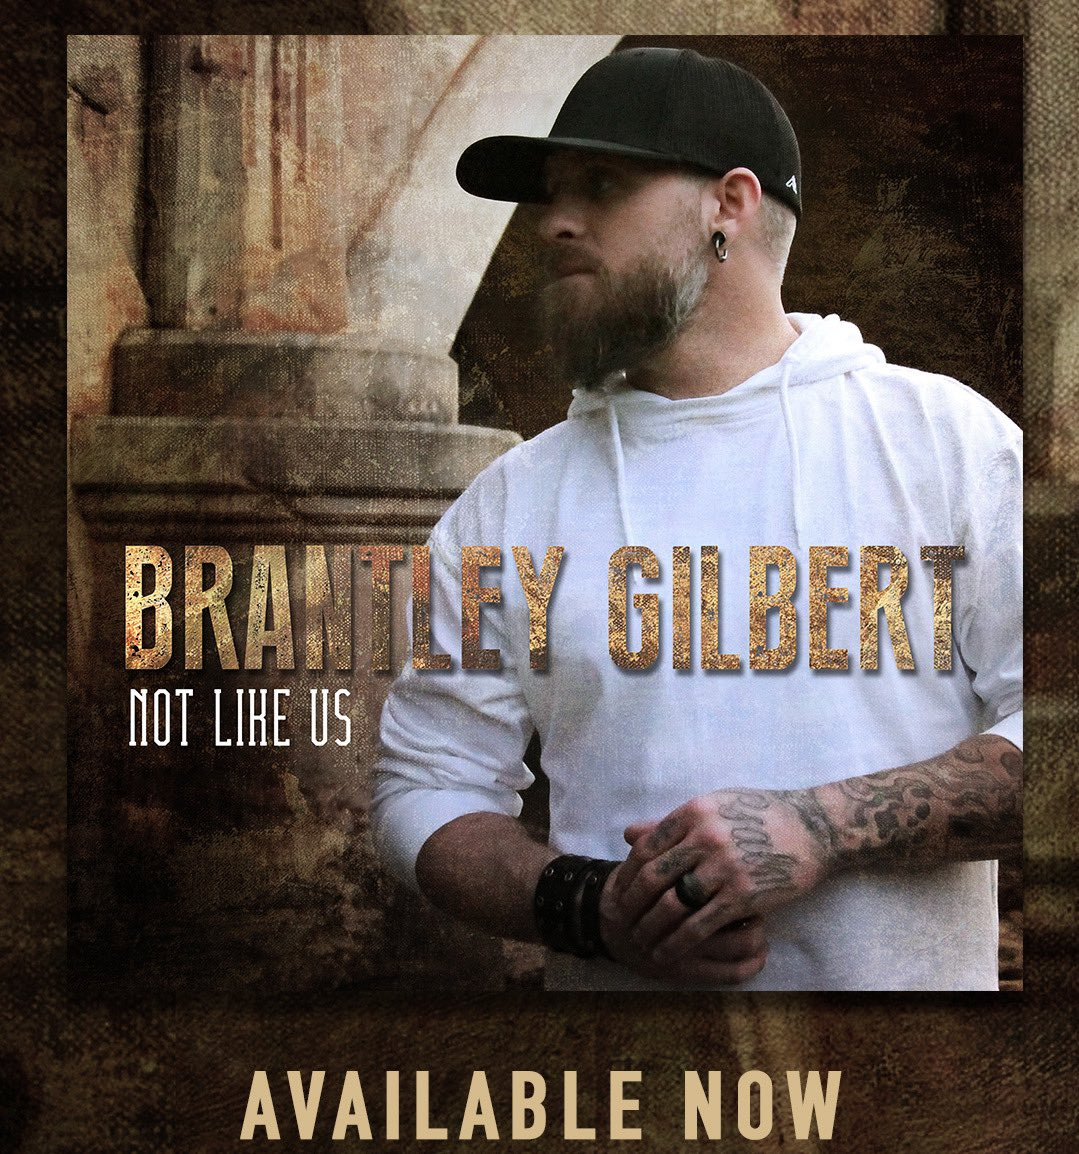 As y'all know we dropped this HAMMER for the #BGNation yesterday.... if you haven't listened to it.... do so and report back.... https://brantley.lnk.to/NotLikeUs #NotLikeUs